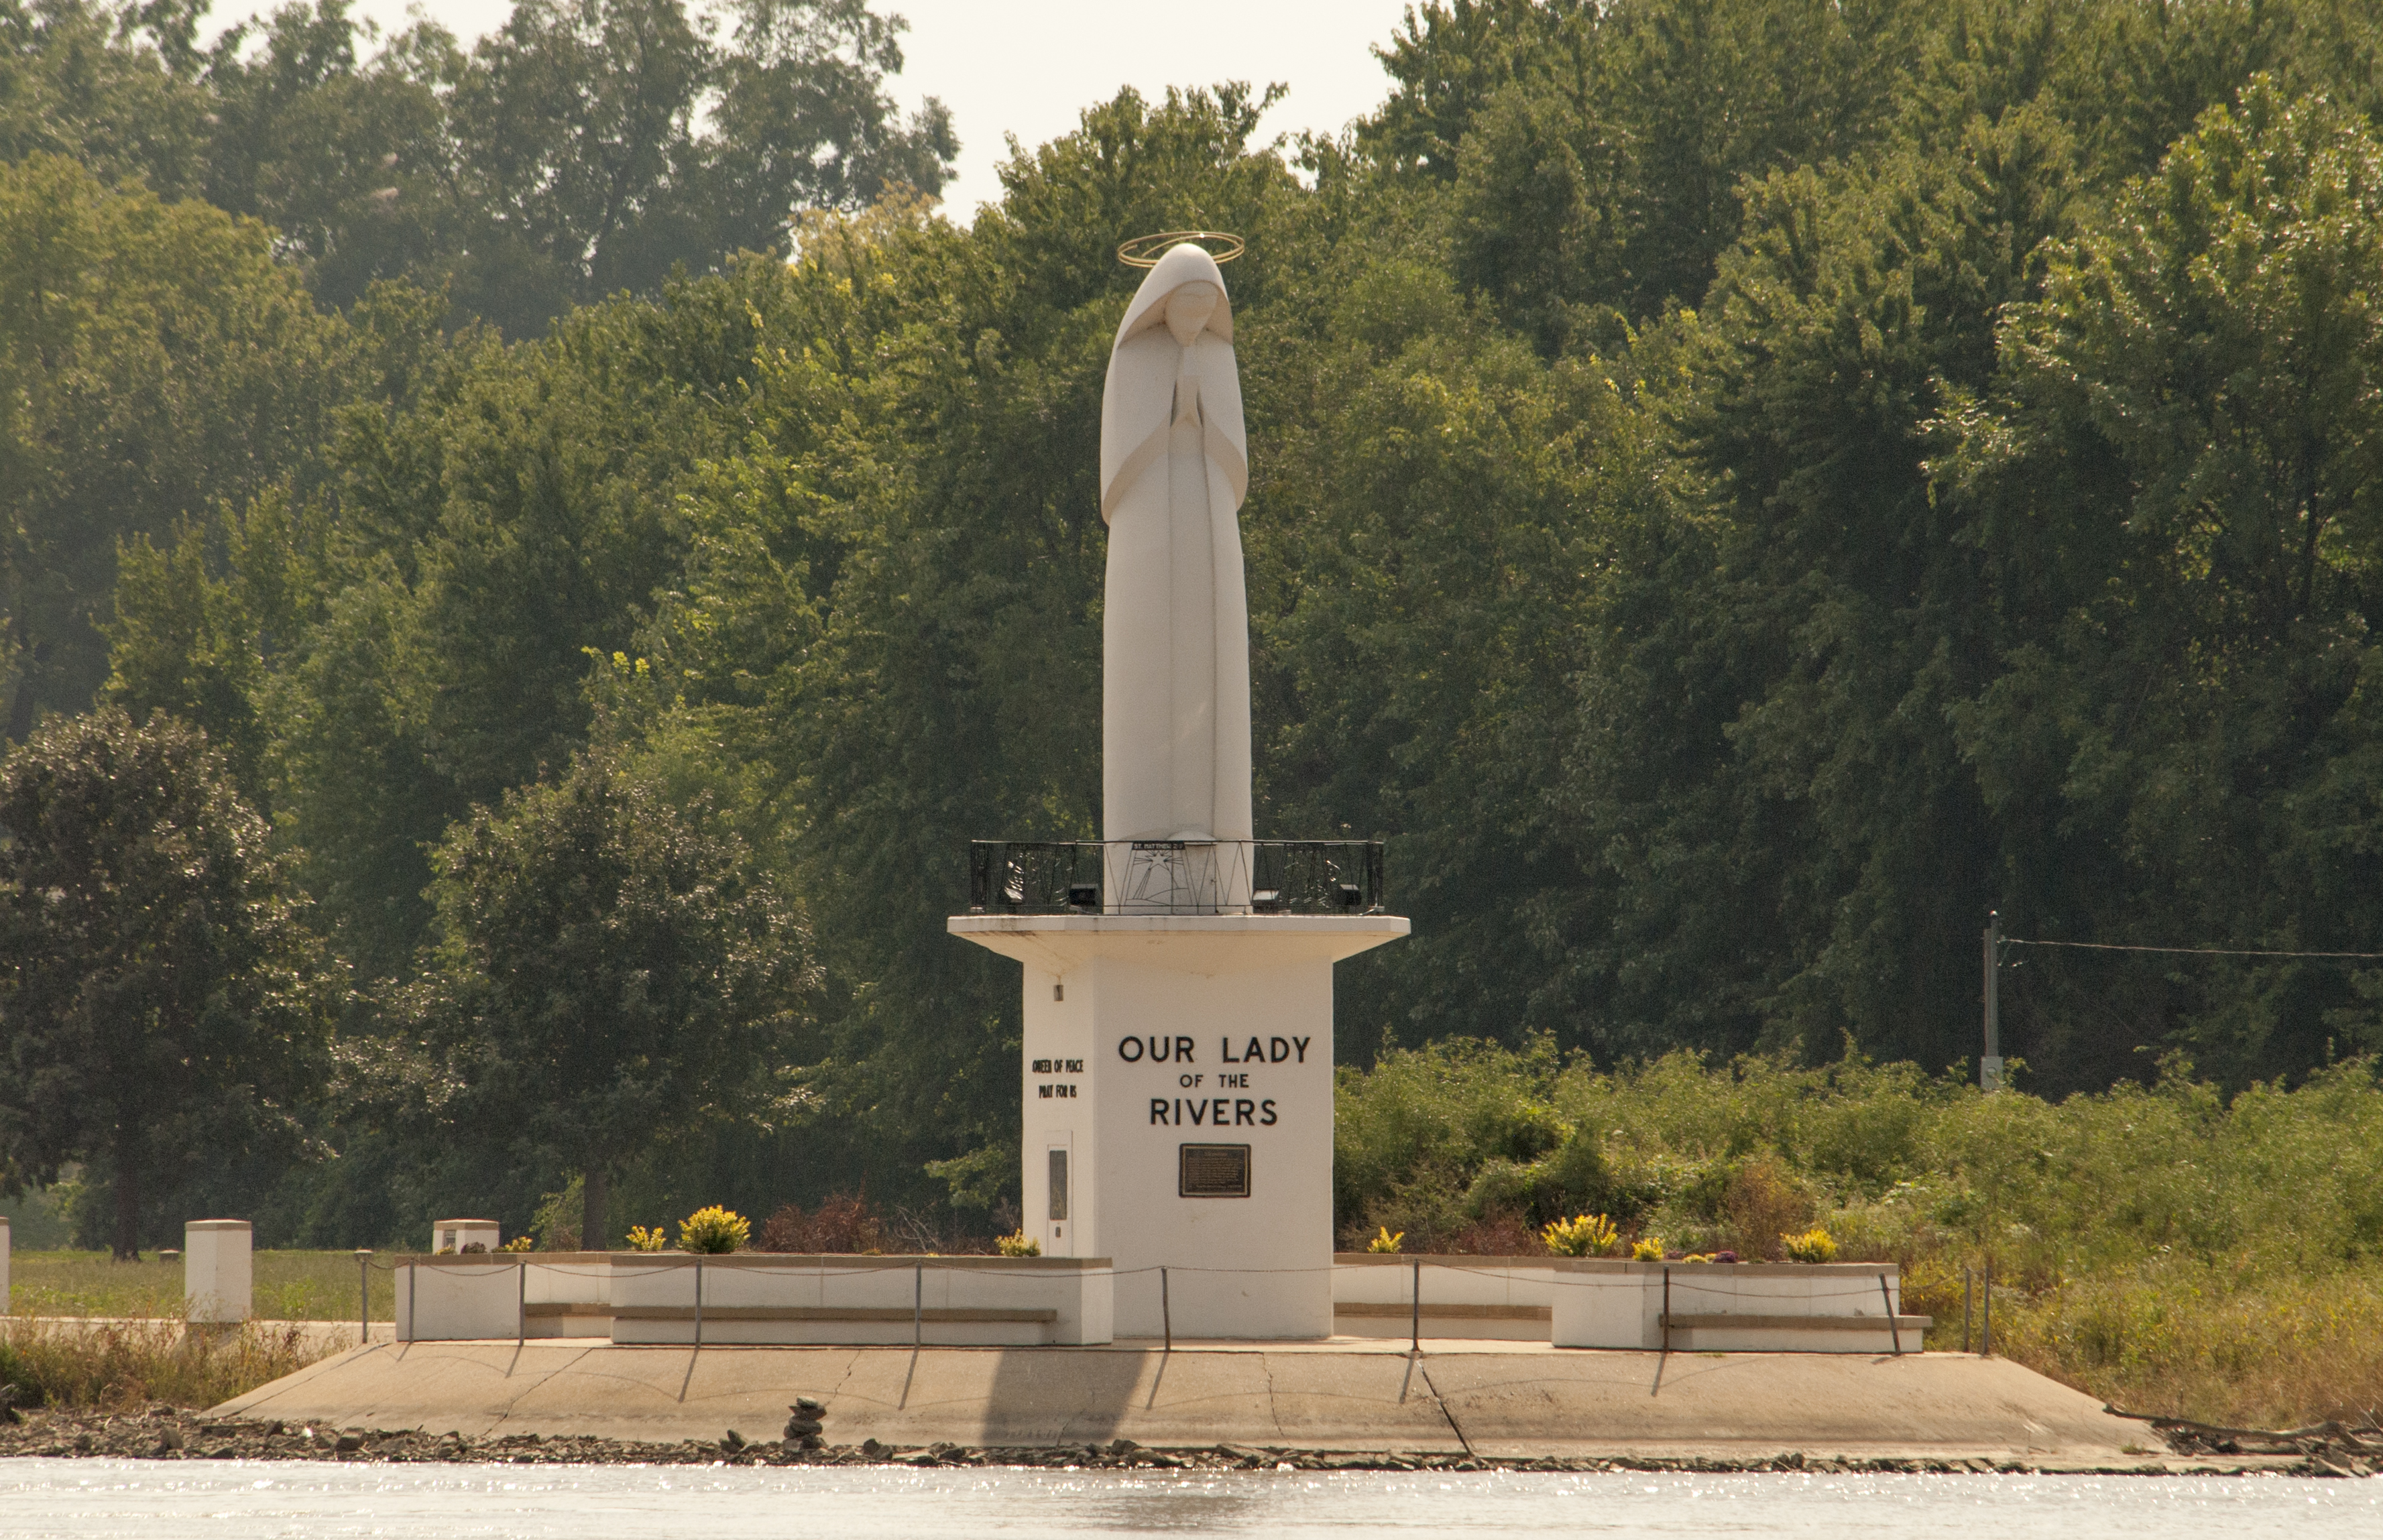 Our-Lady-of-the-Rivers-Shrine-Near-Confluence-of-Mississippi.-Missourri-and-Illinois-Rivers